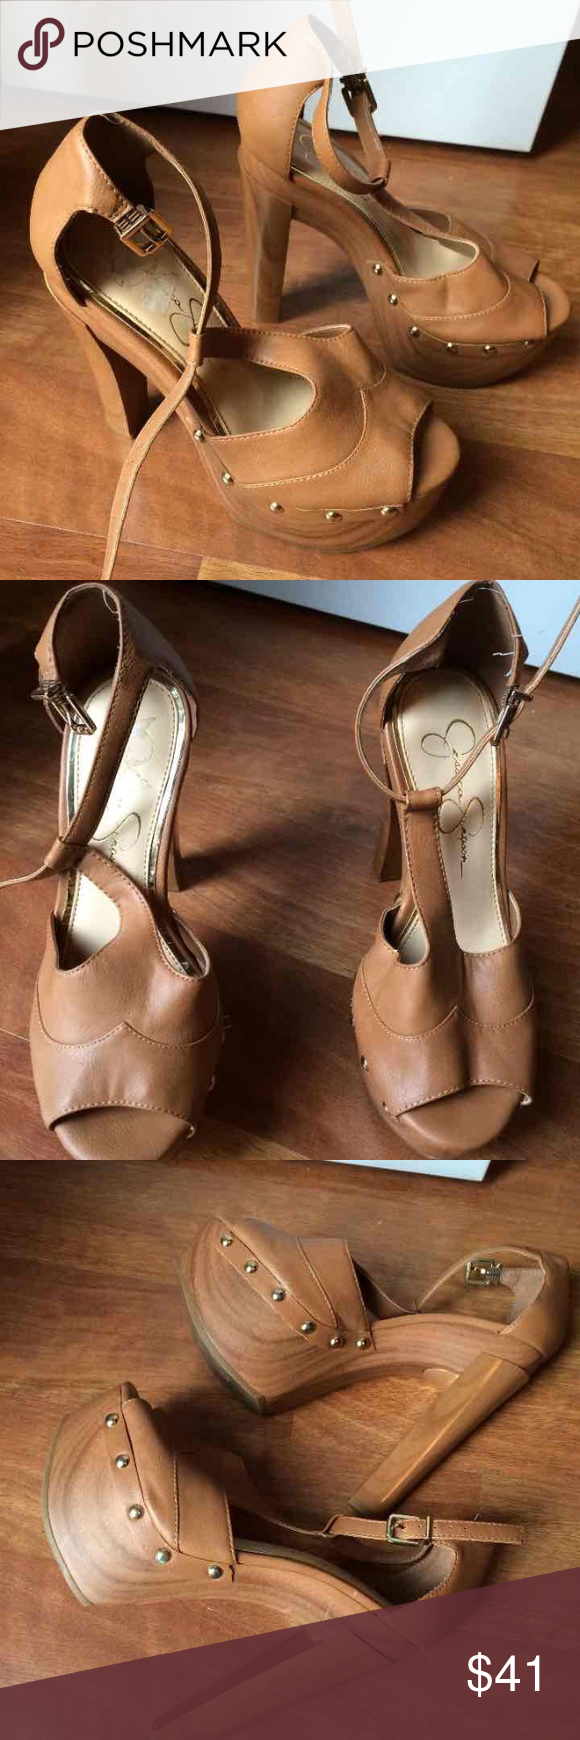 ❗️PRICE CUT❗️JESSICA SIMPSON HEELS *cheaperonmerc Pretty tall not sure of the inches maybe about 4 inches. Normal wear, no extreme damage. Only worn once.    *** also for sale on mercarri for less *** Jessica Simpson Shoes Heels